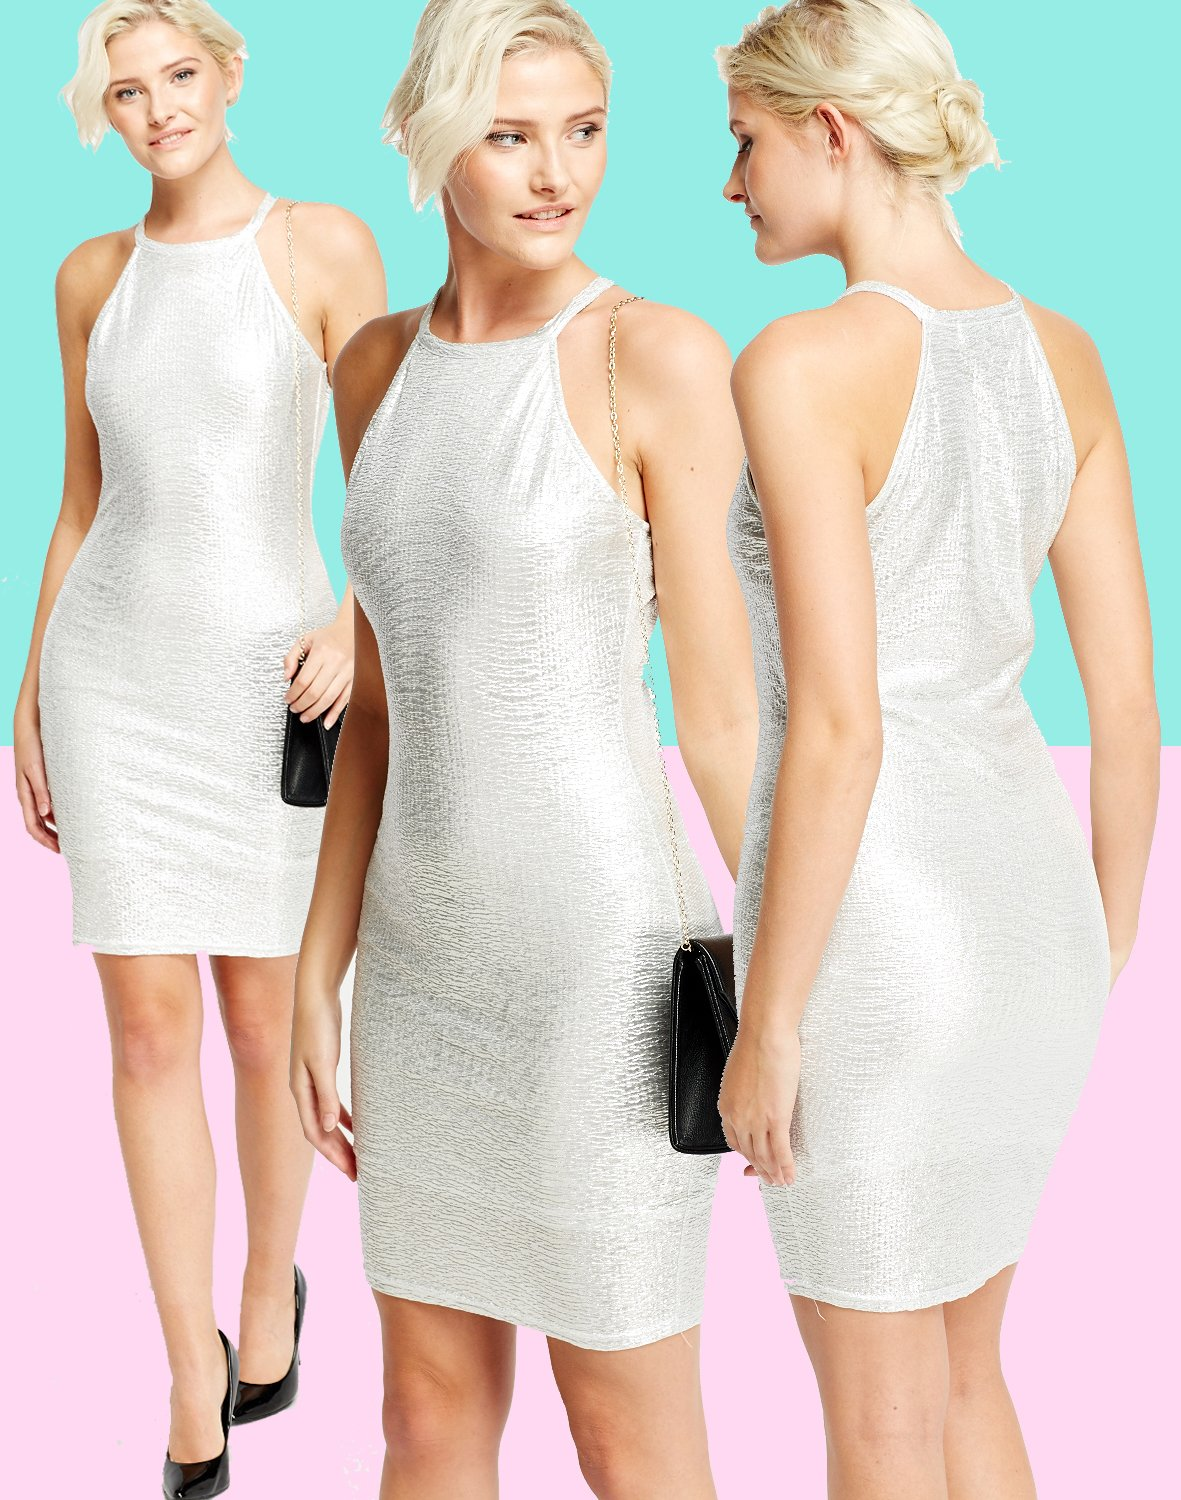 Silver Metallic Bodycon Dress Size Small UK 6-8 � FREE Shipping Within Europe �